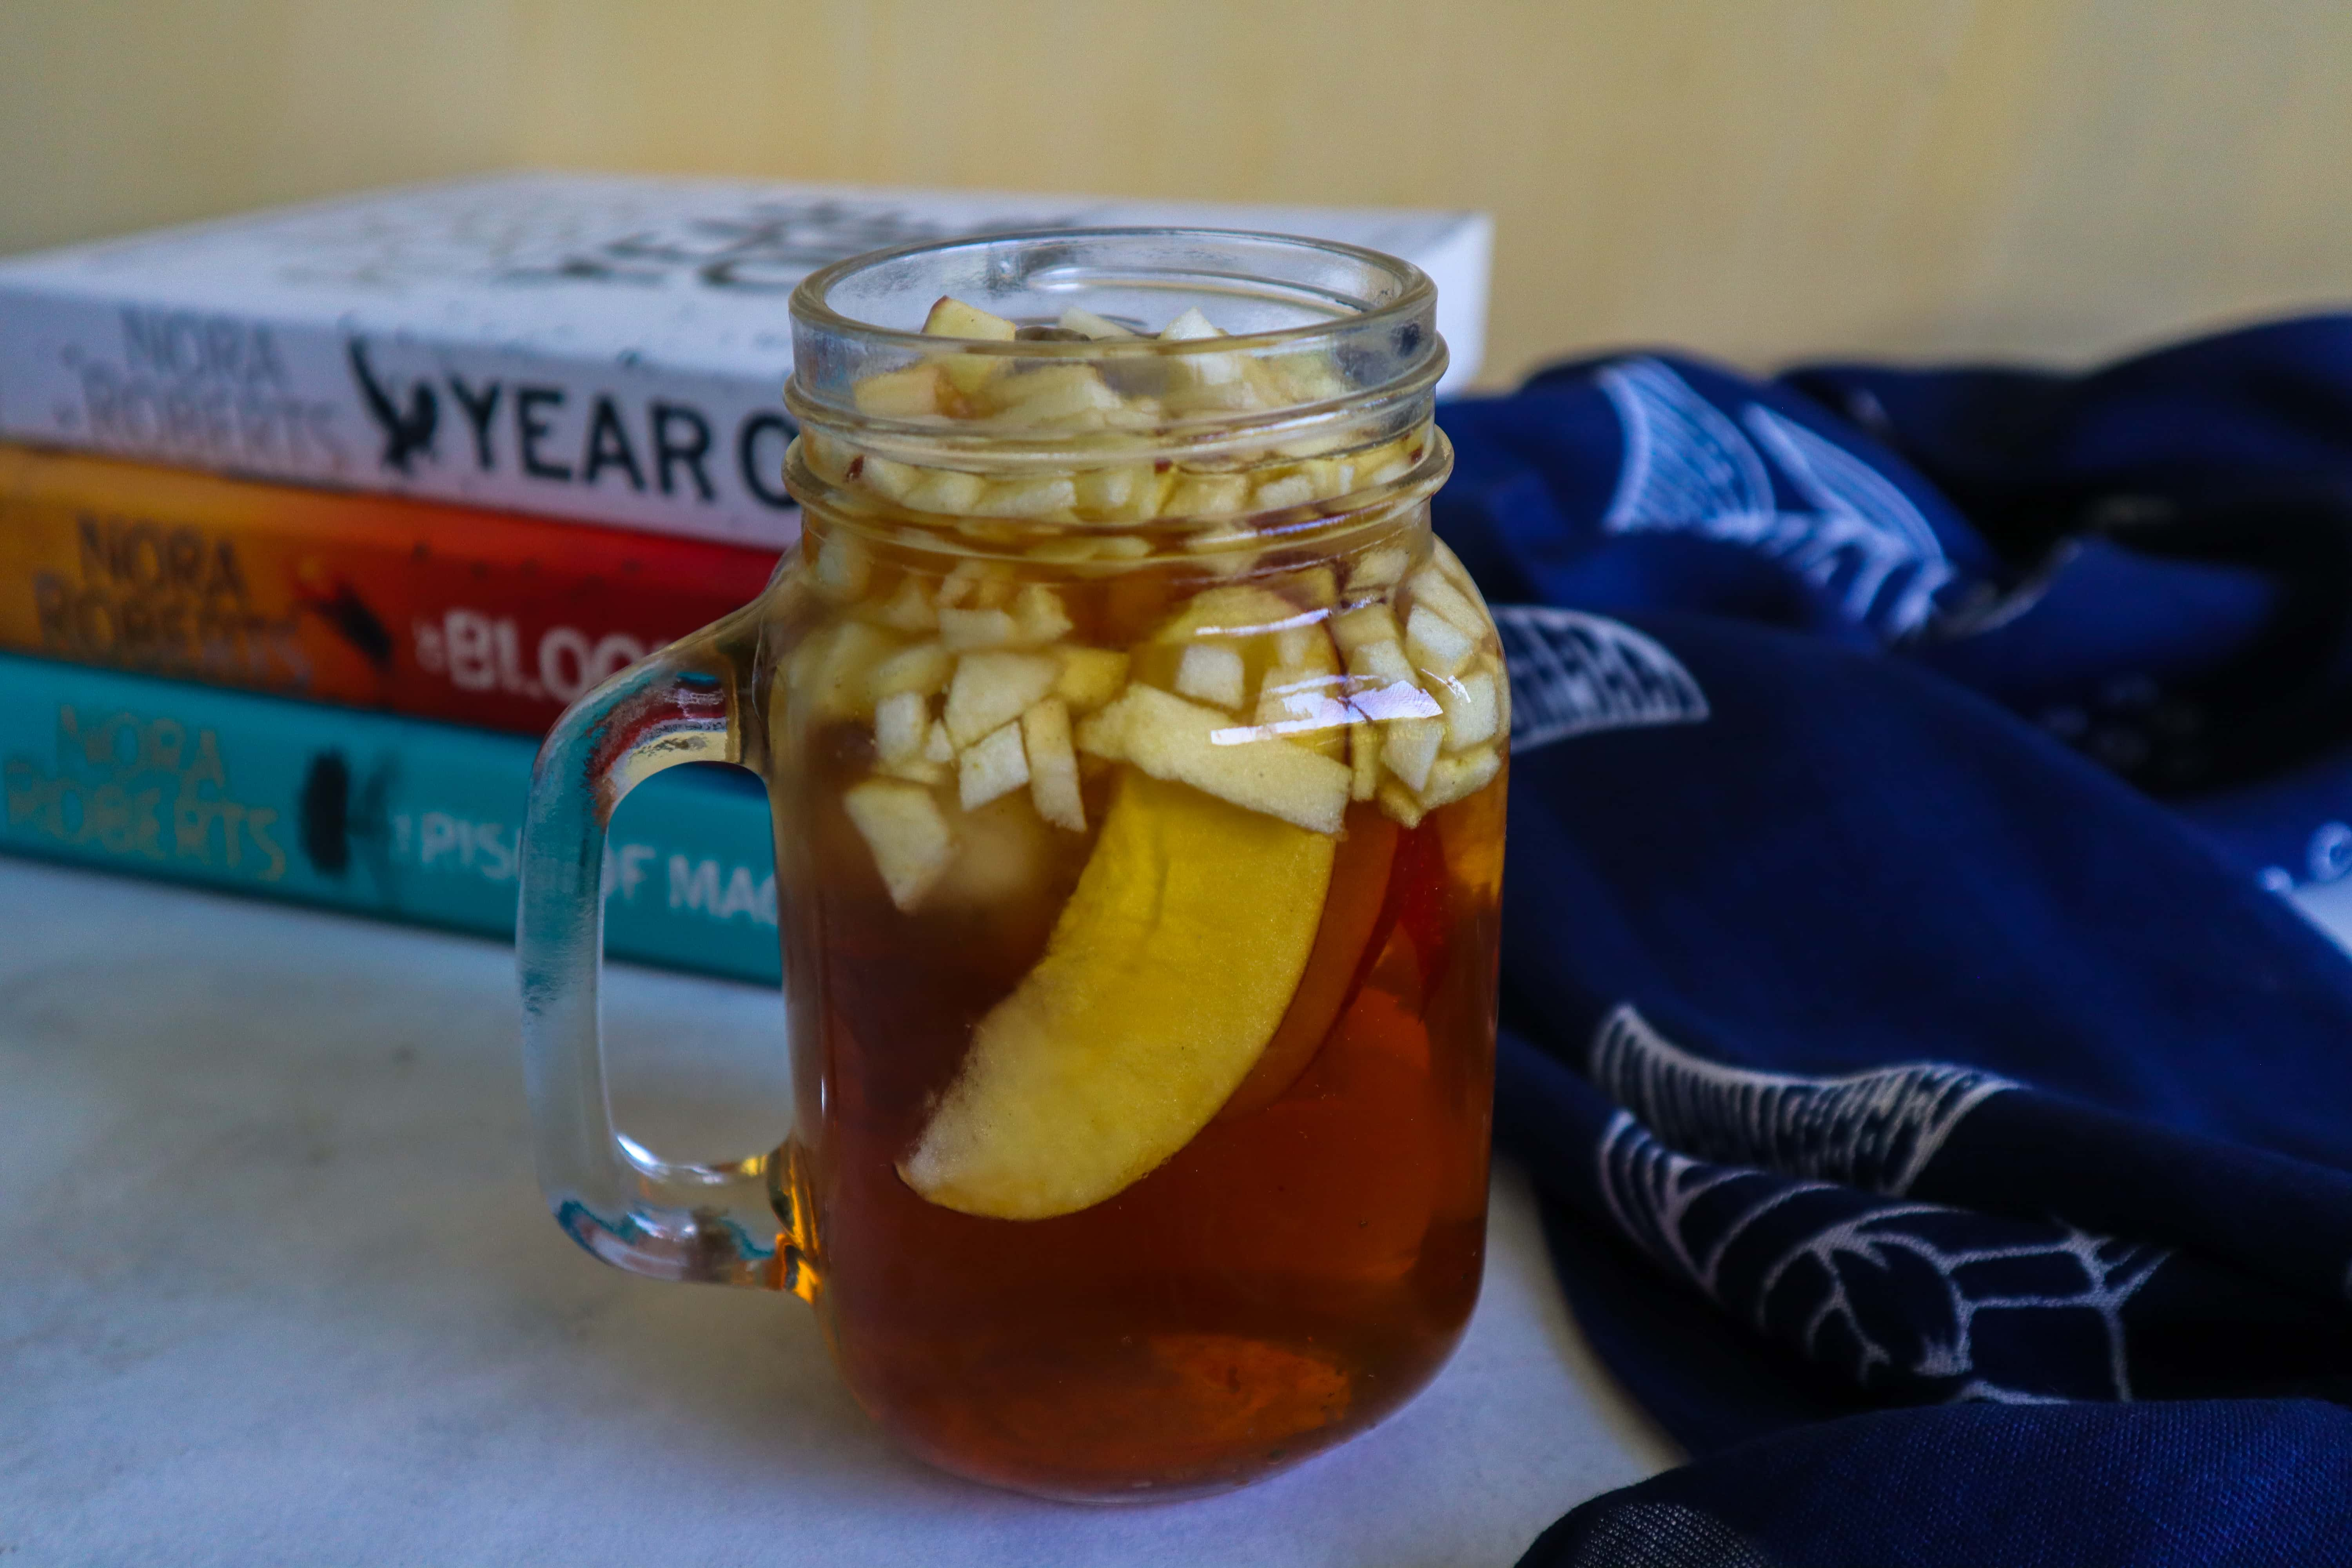 icedapplechai, iced apple chai, summer drink, summerdrink, cold drink, colddrink, blogphoto, blog photo, fromthecornertable, from the corner table, copyrightimage, copyright image